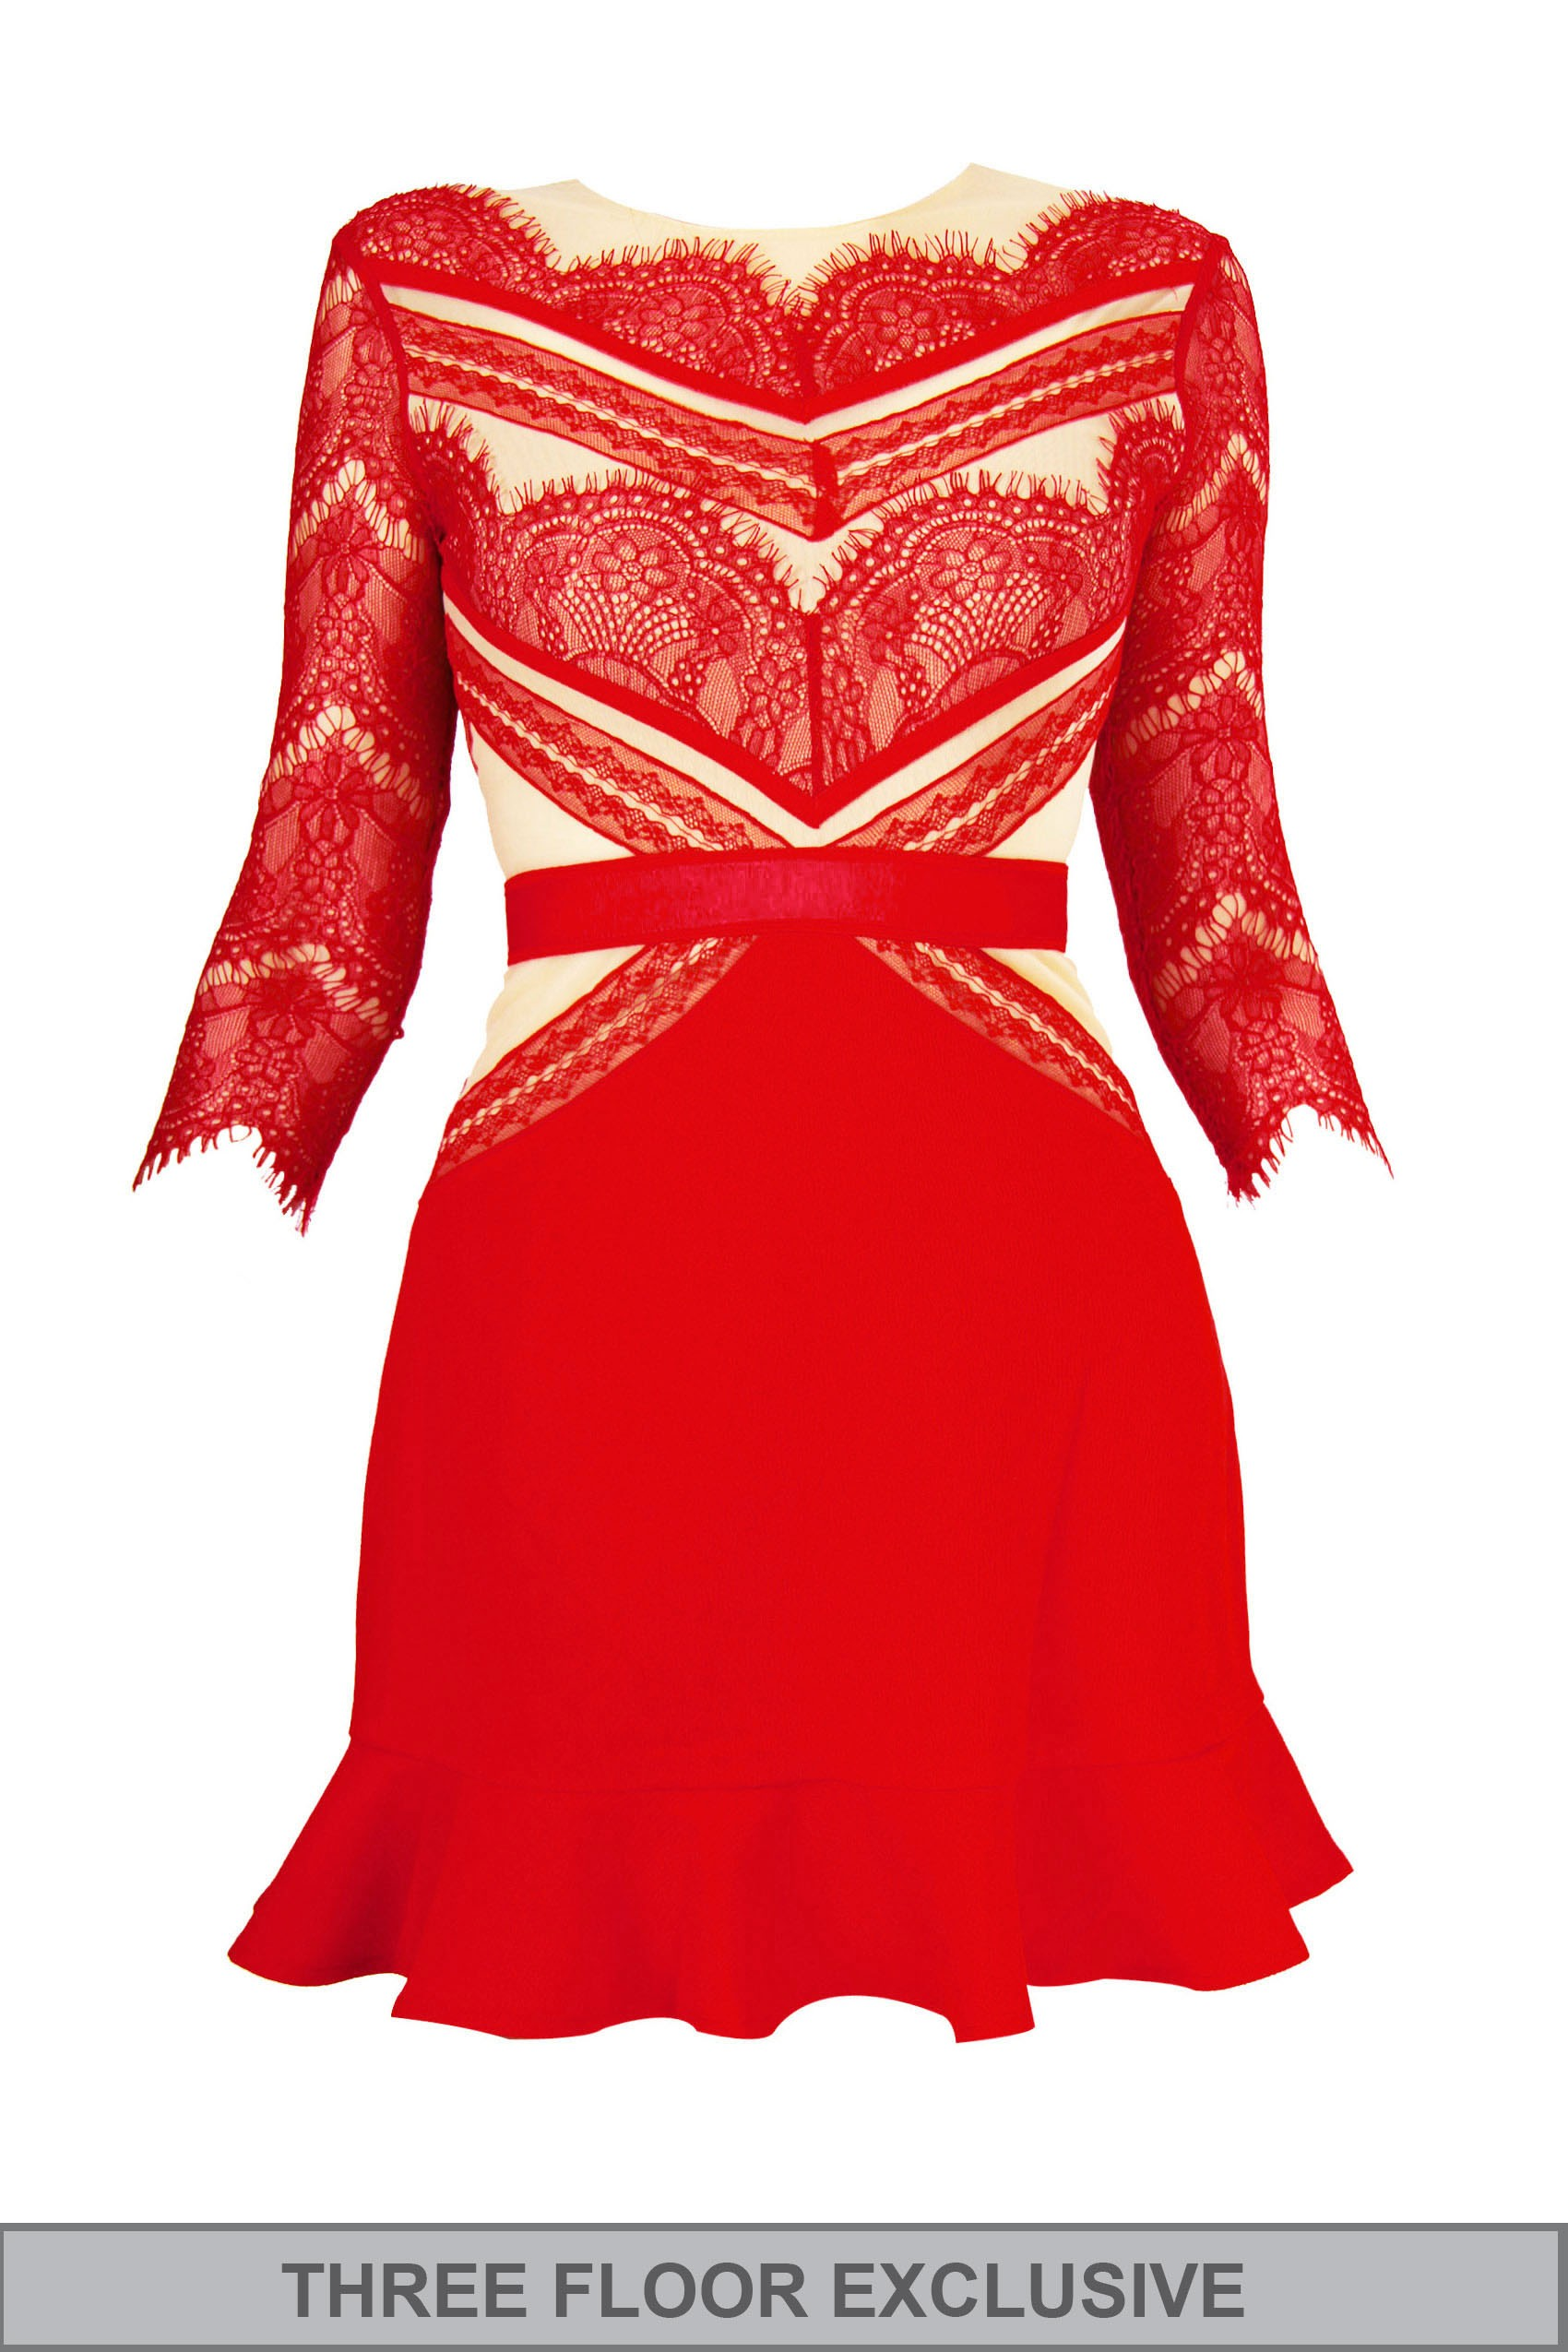 SHADES OF RED Strawberry Dress by Three Floor - Styligion.com